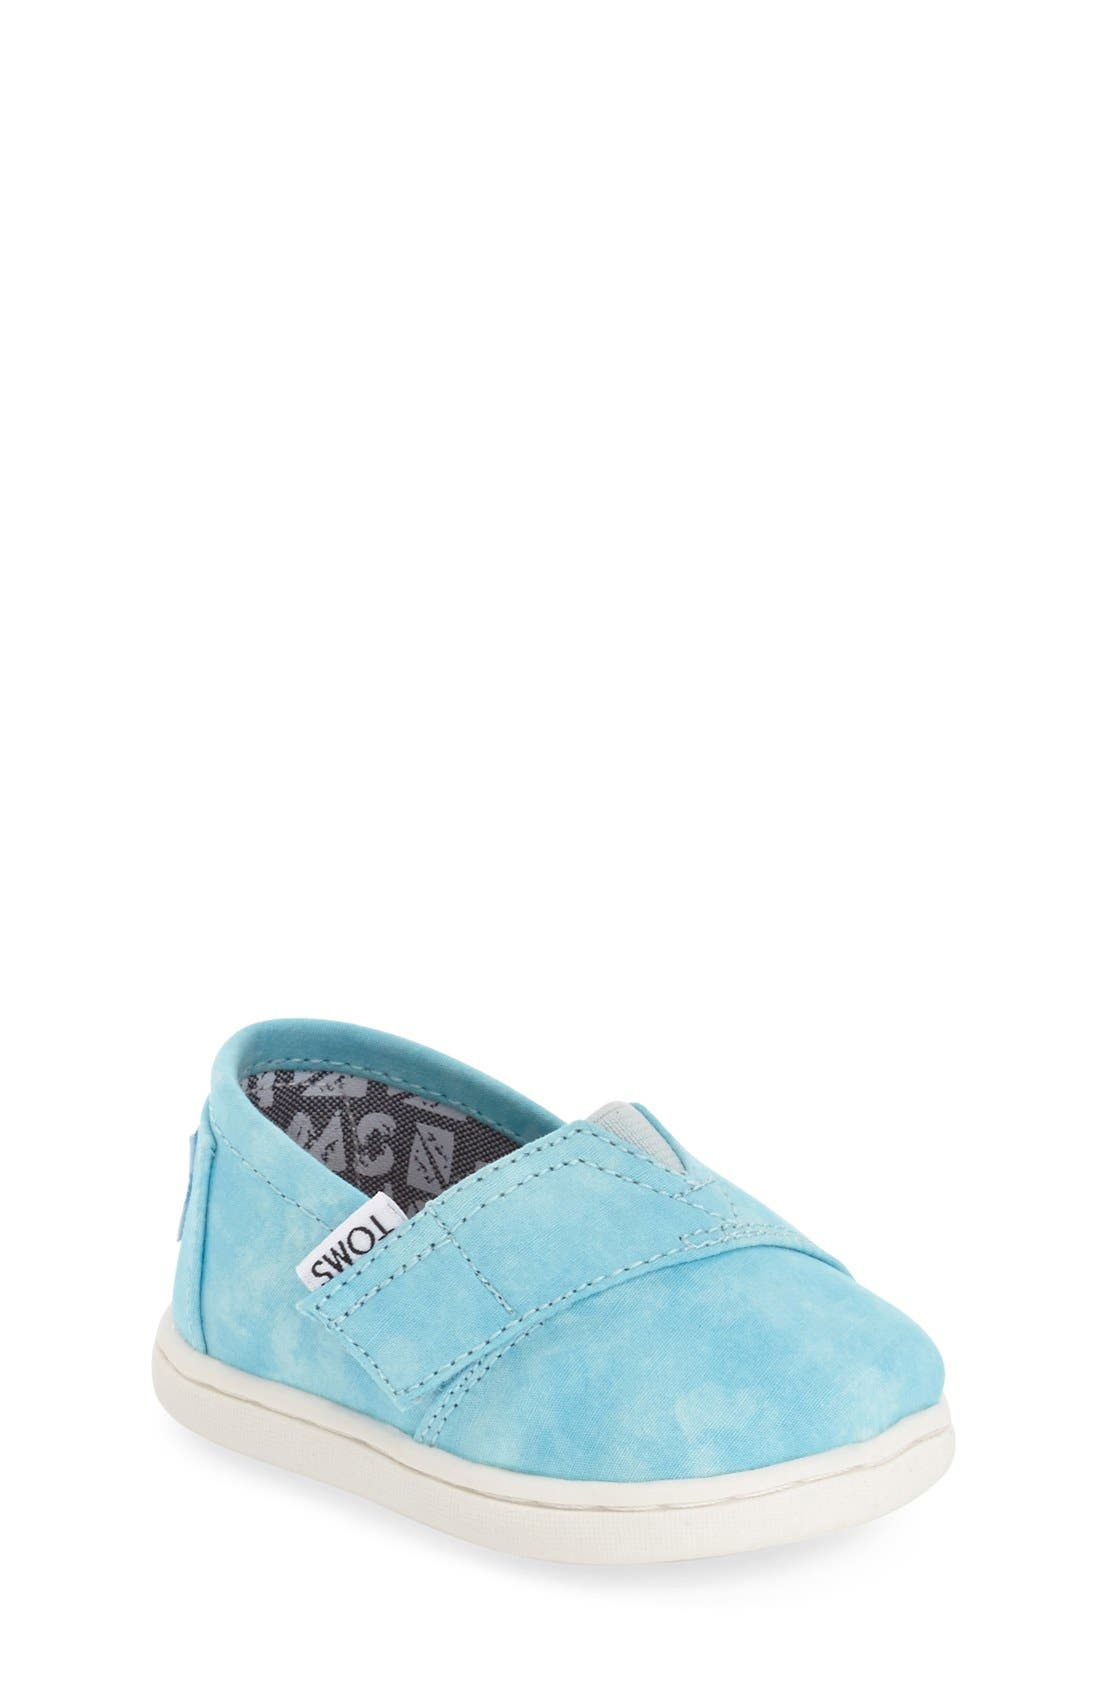 'Classic - Tiny' Print Slip-On,                         Main,                         color, AQUA